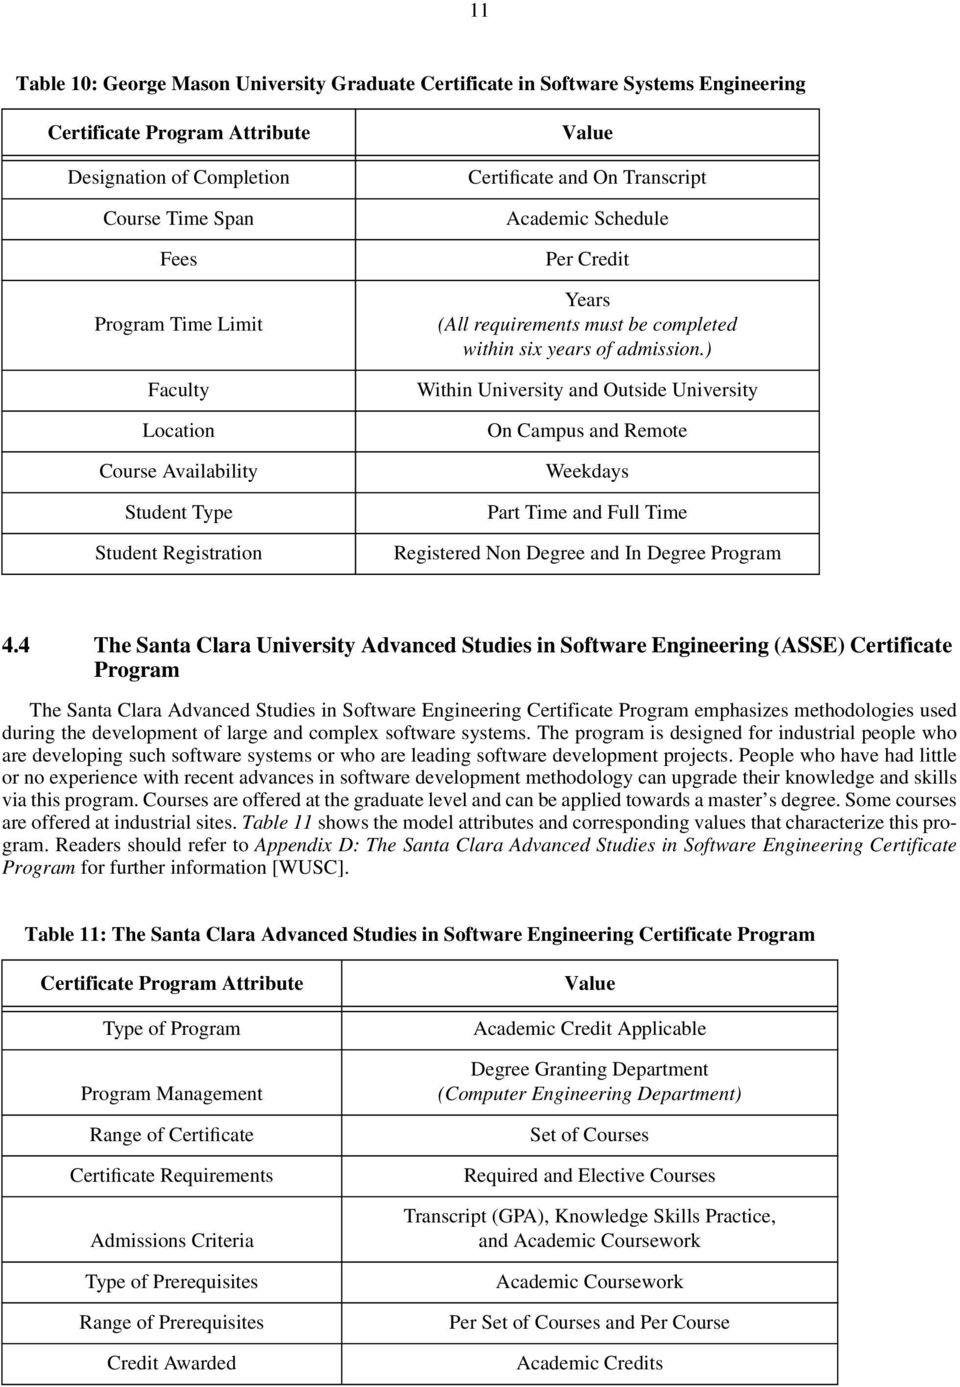 Model For Characterizing And Creating Certificate Programs In